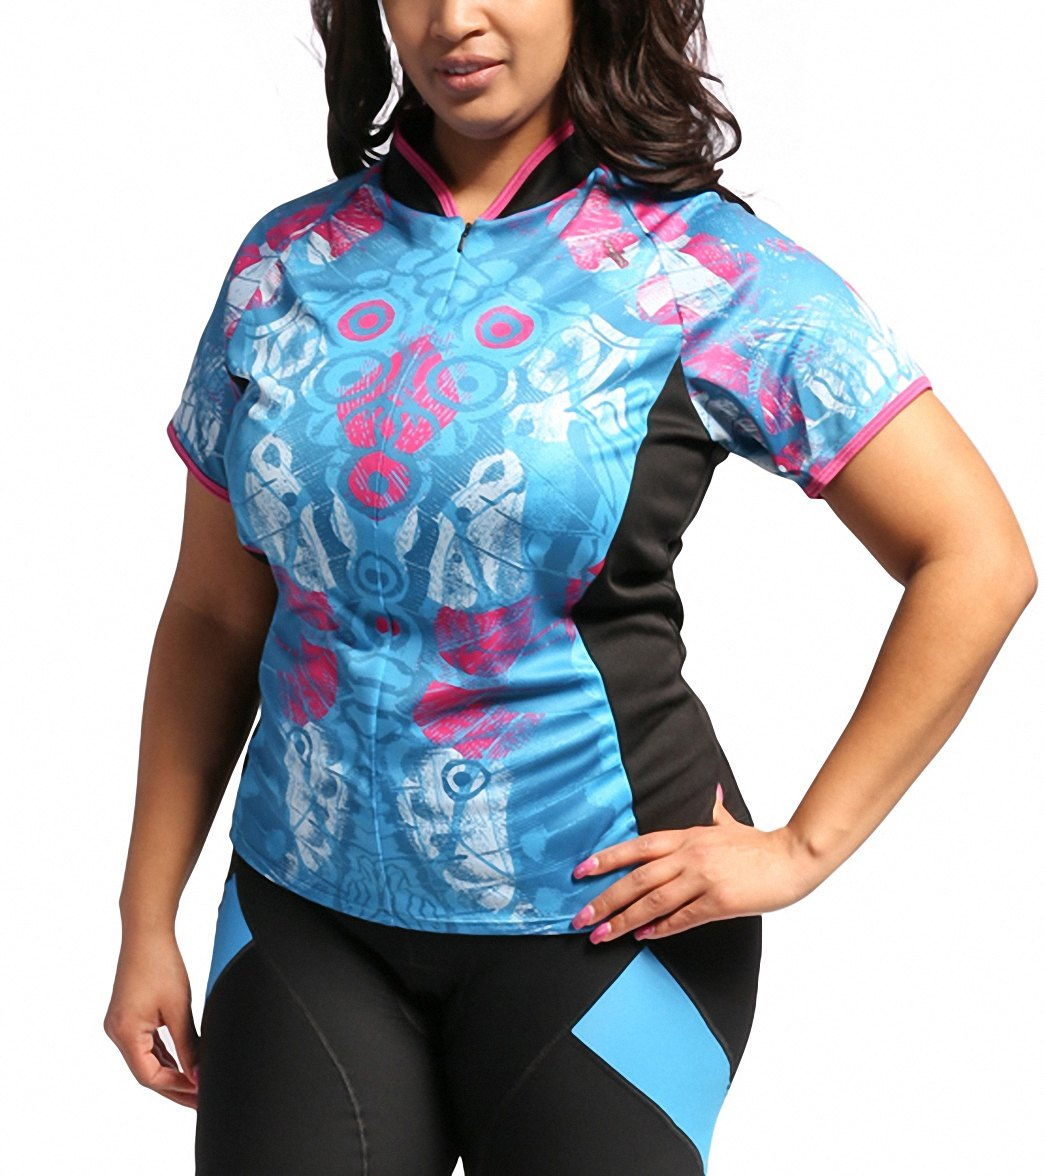 b74efd26ef5 Shebeest Women s Bellissima Wings Plus Size Cycling Jersey at ...